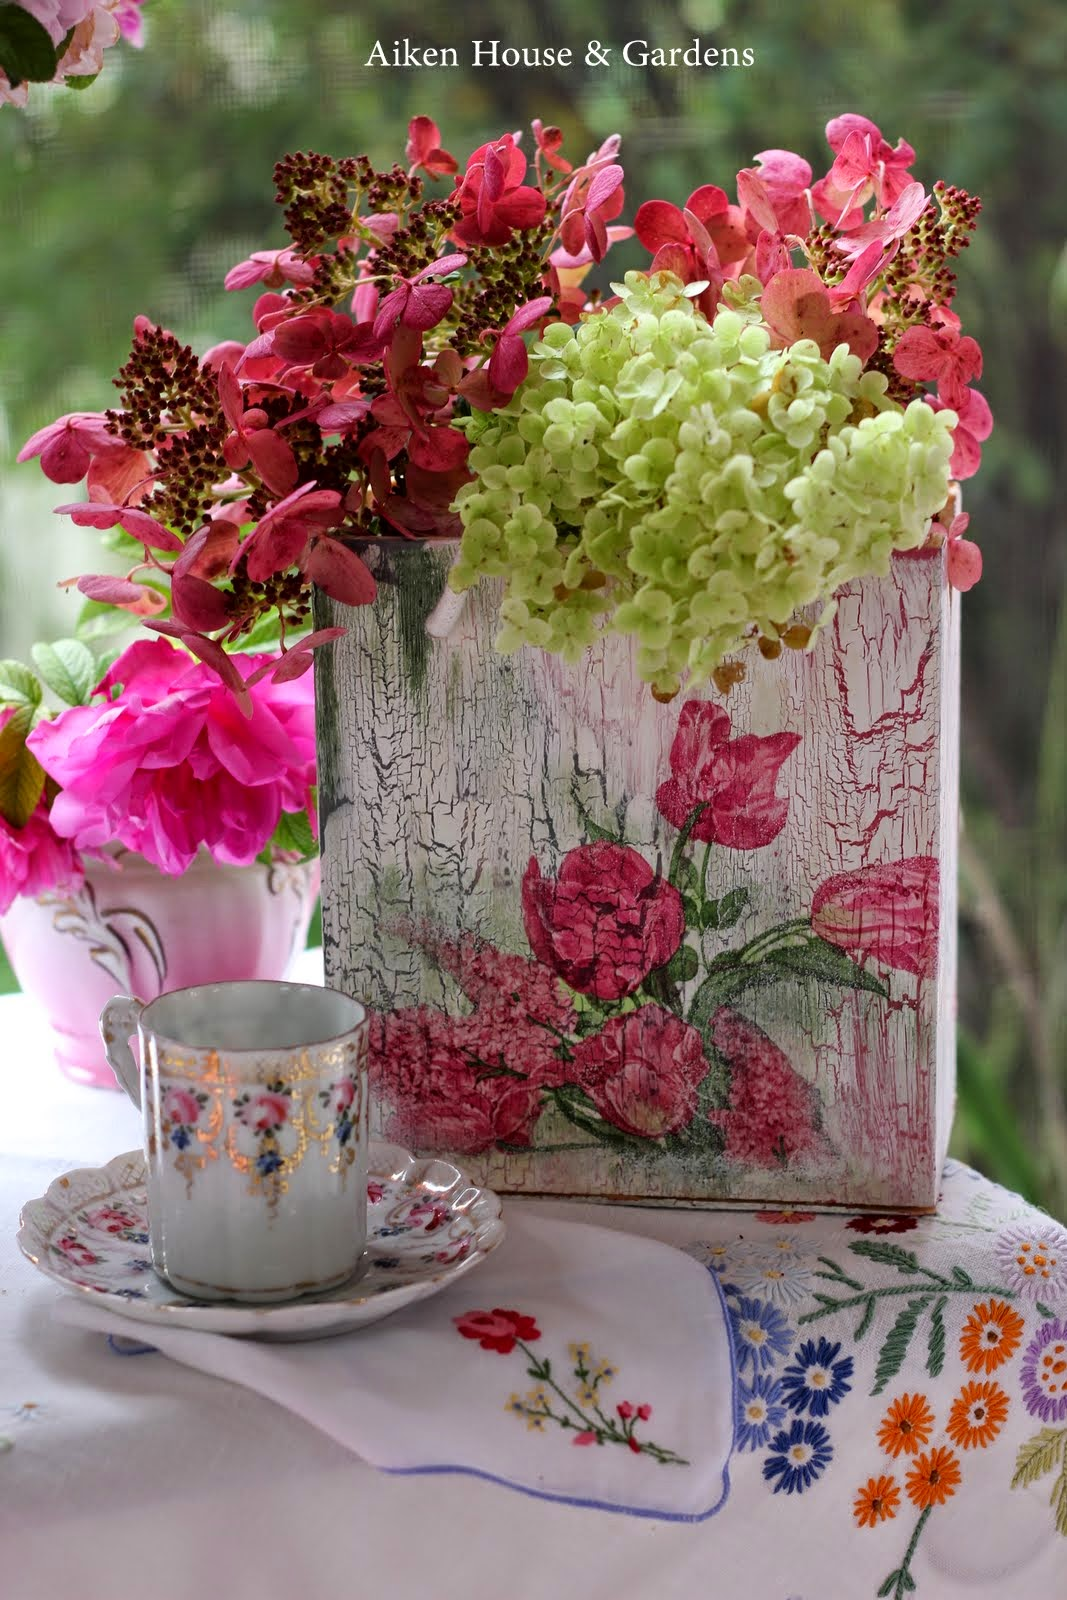 A Lovely Bouquet From The Garden In A Beautiful Pitcher And A Hand  Embroidered Tablecloth.